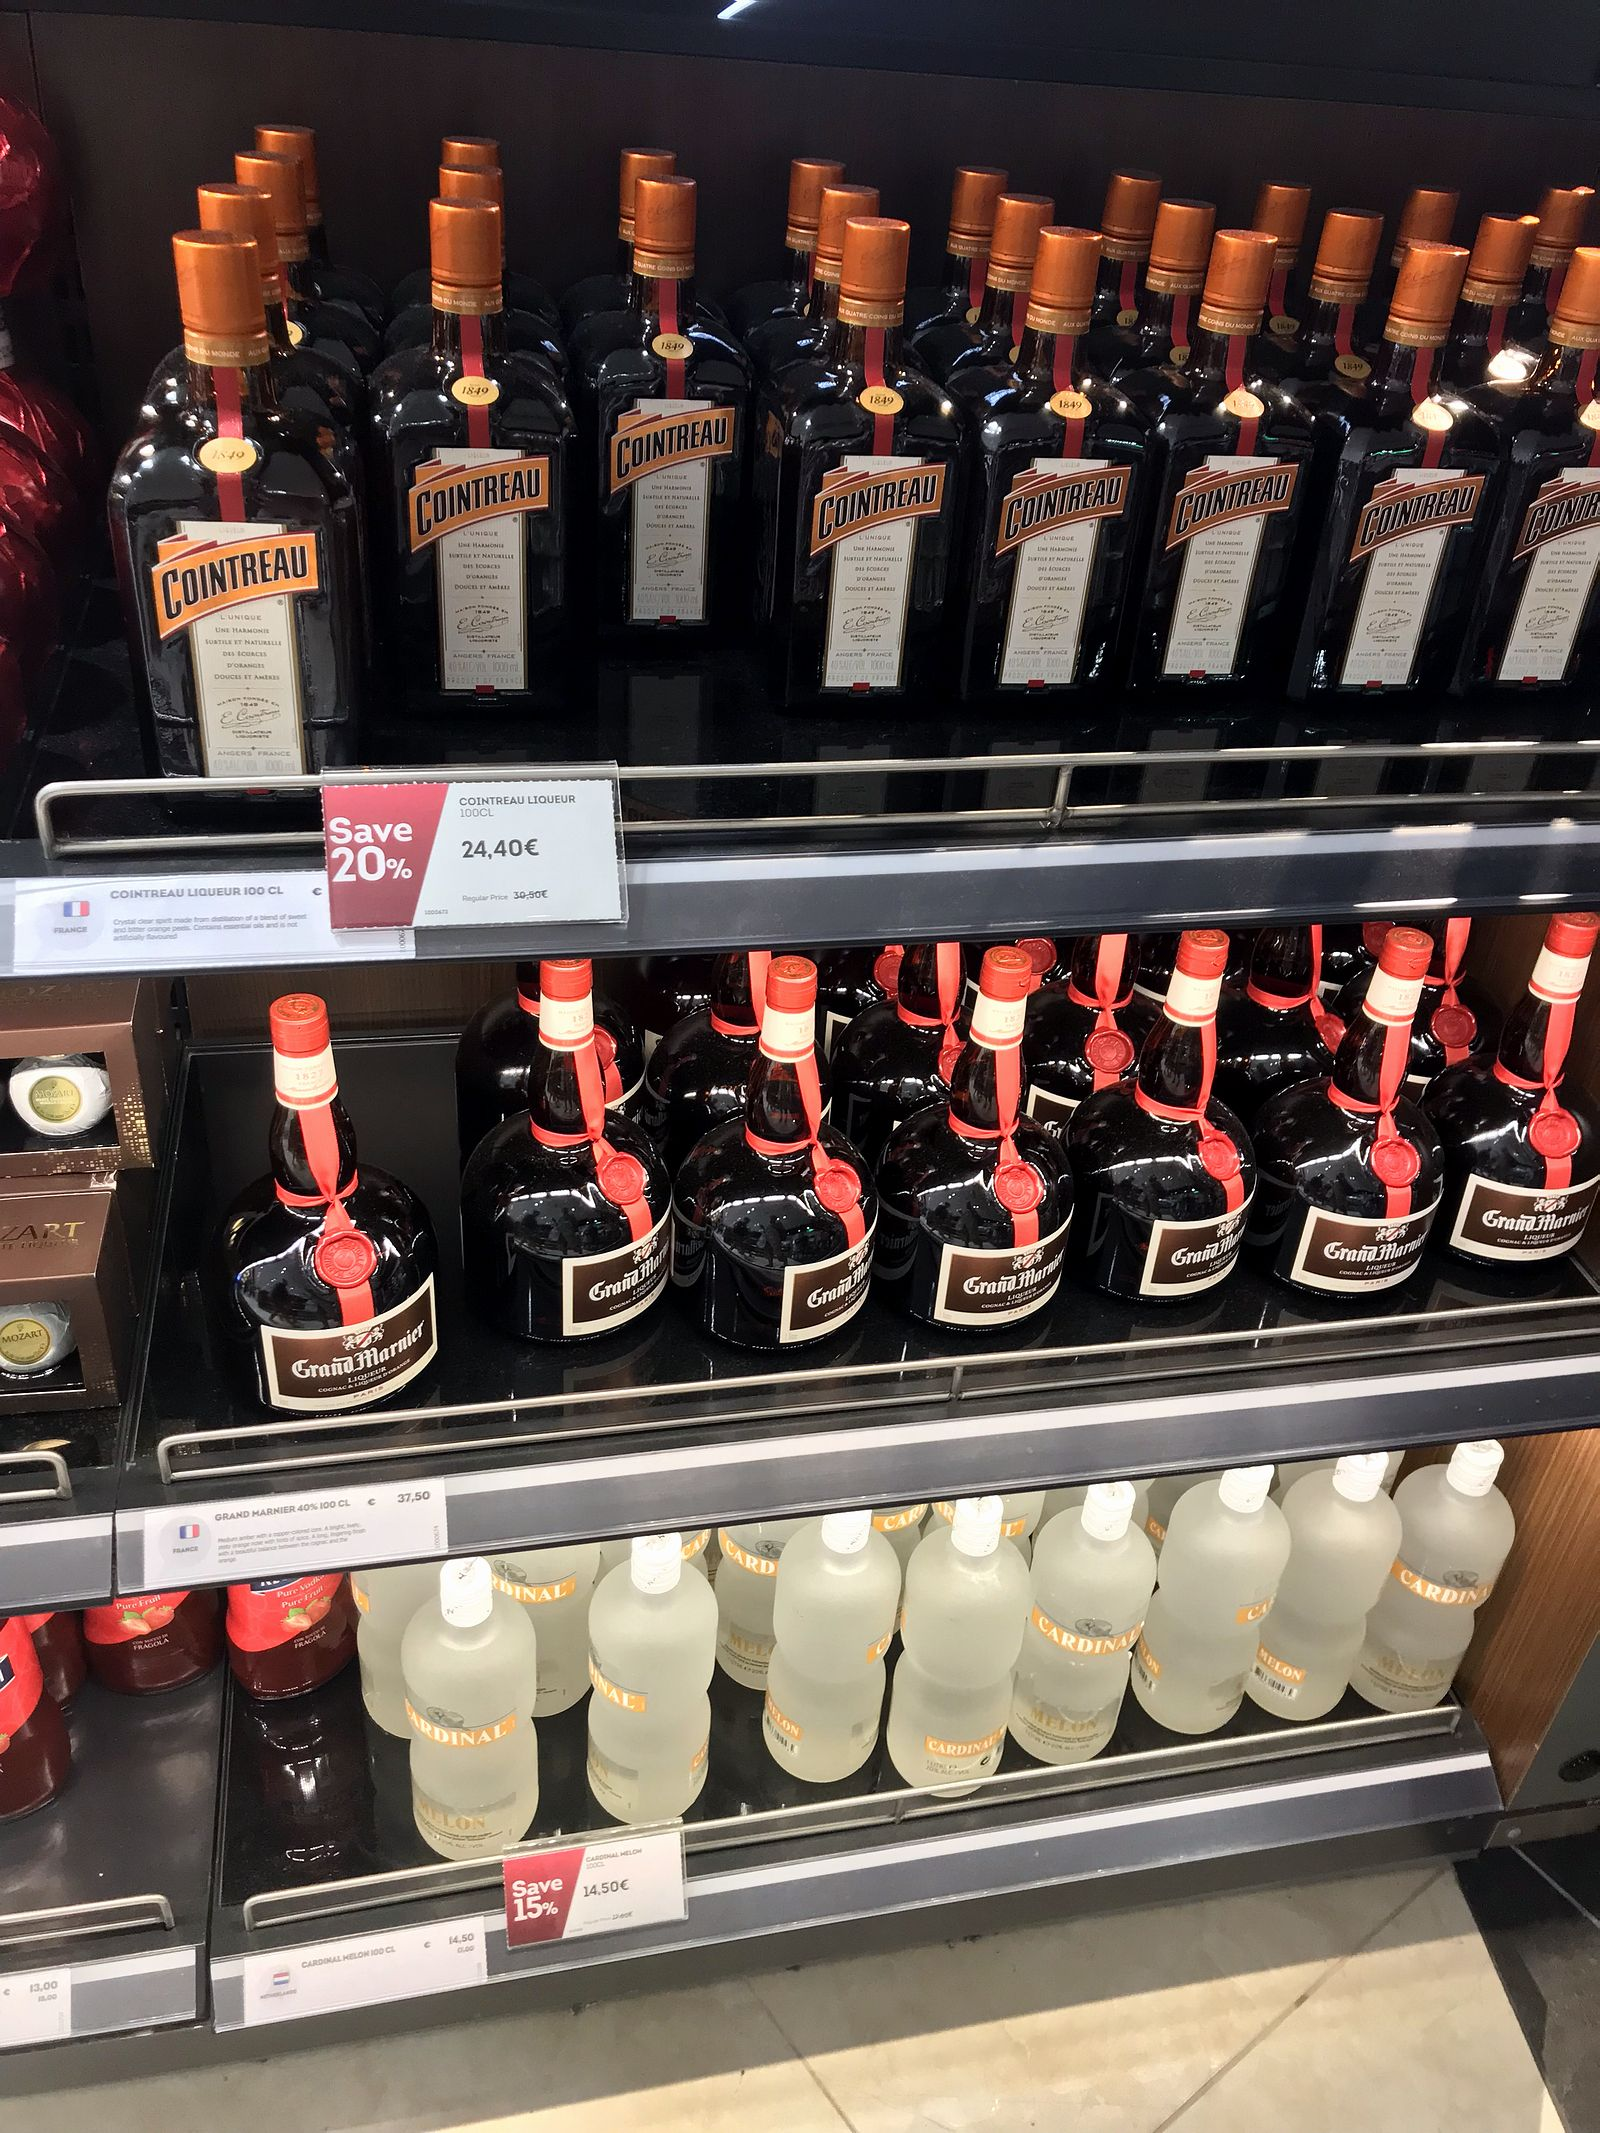 Duty free Antalya, august 2019, liqueur countreau, grand marnier